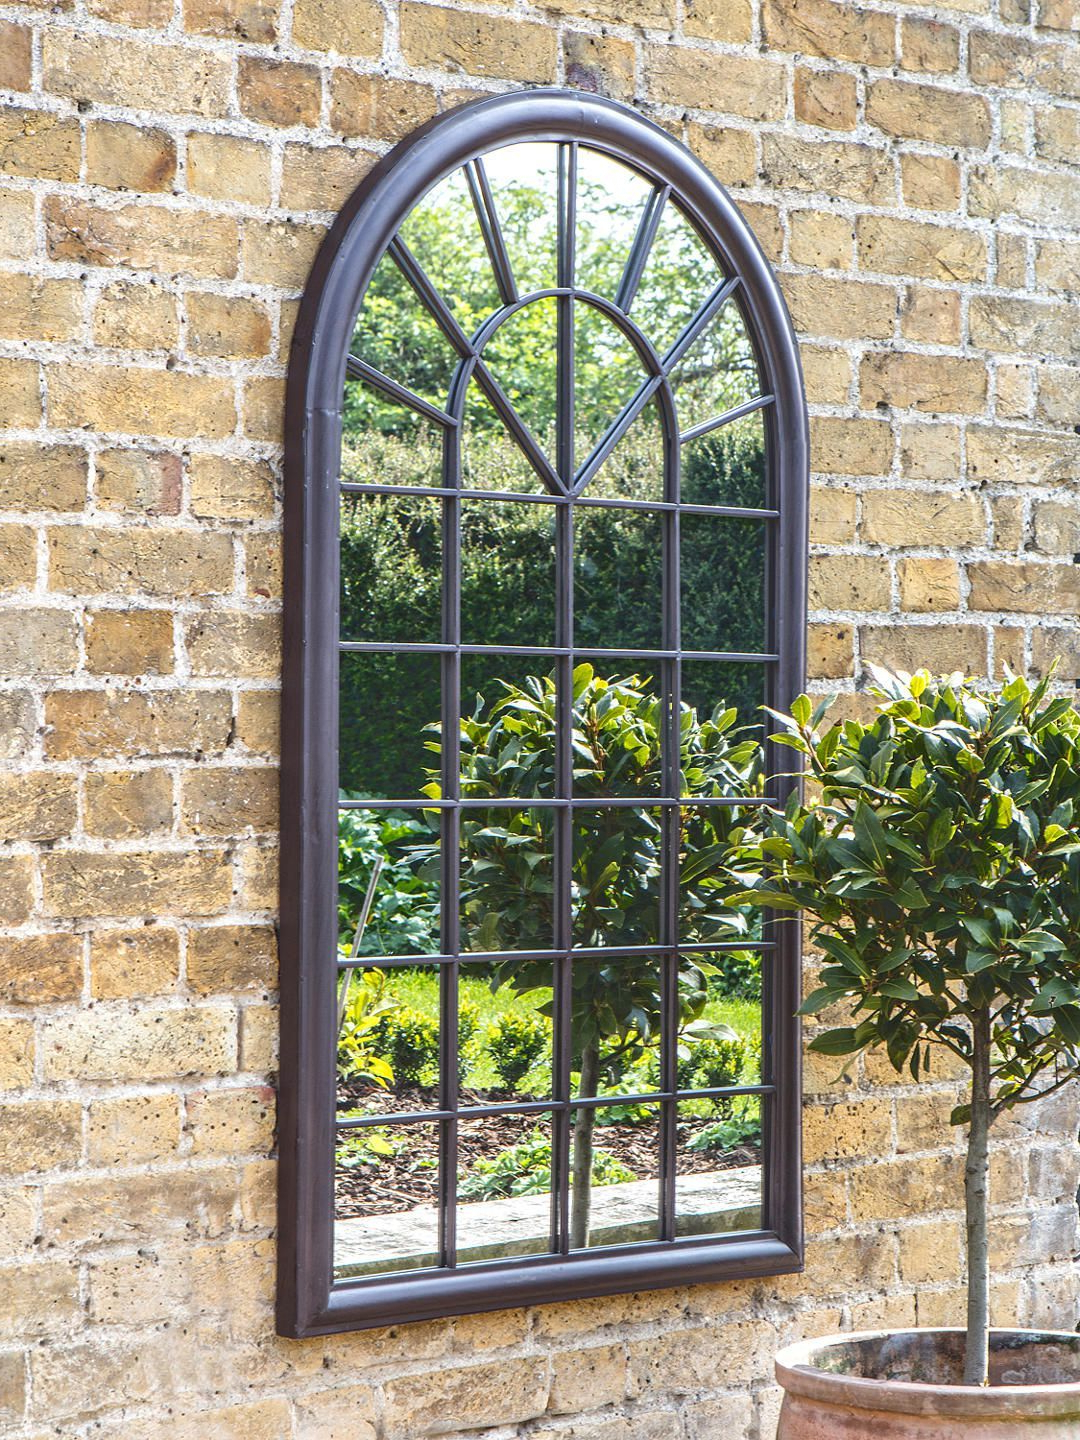 Fura Outdoor Garden Wall Window Style Arched Mirror, 131 X 75cm, Antique Bronze With Most Recent Outdoor Garden Wall Mirrors (View 2 of 20)